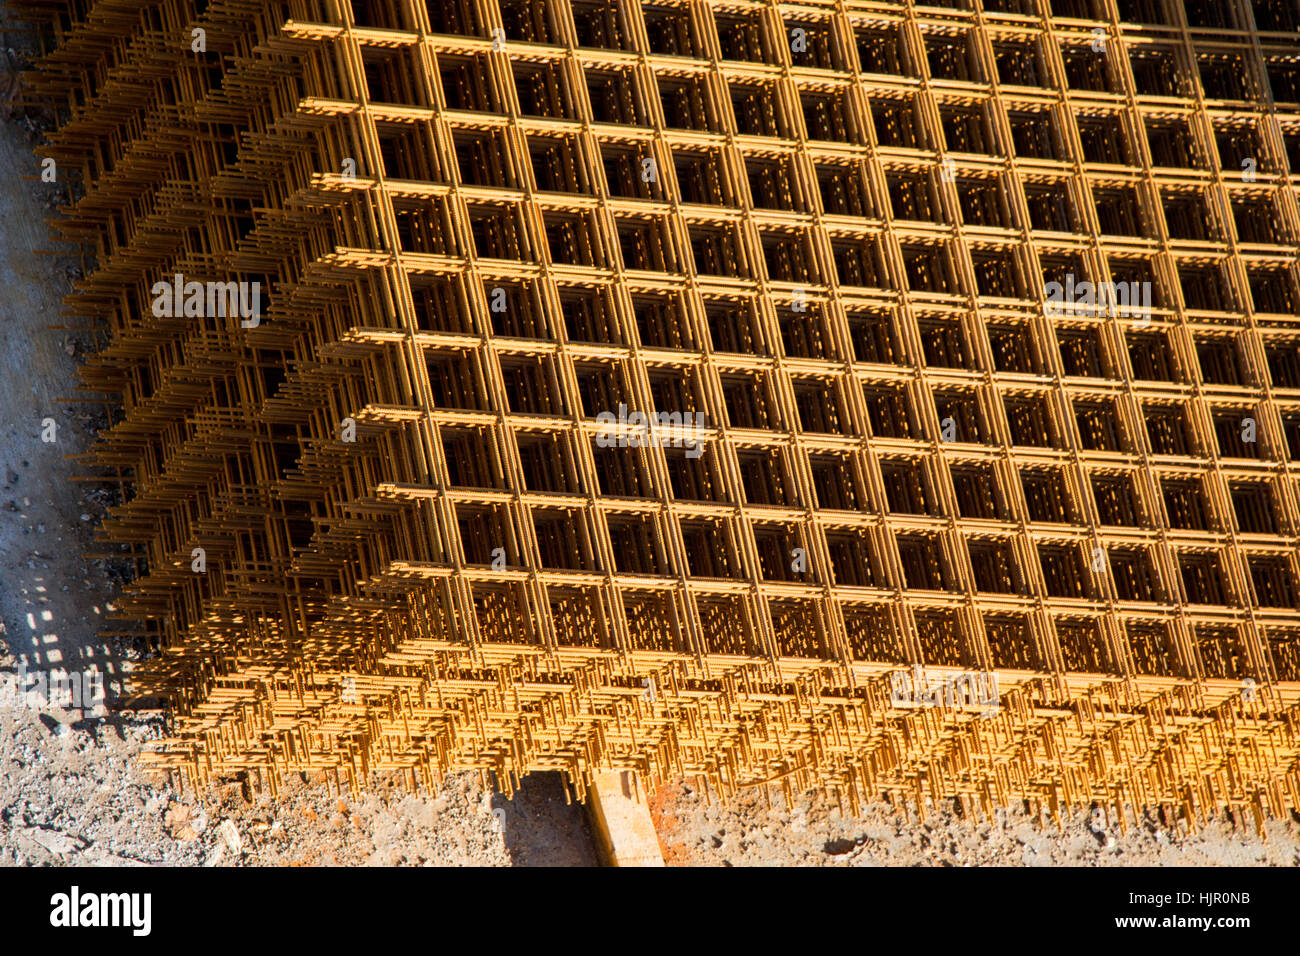 Rod Wire Stockfotos & Rod Wire Bilder - Seite 10 - Alamy